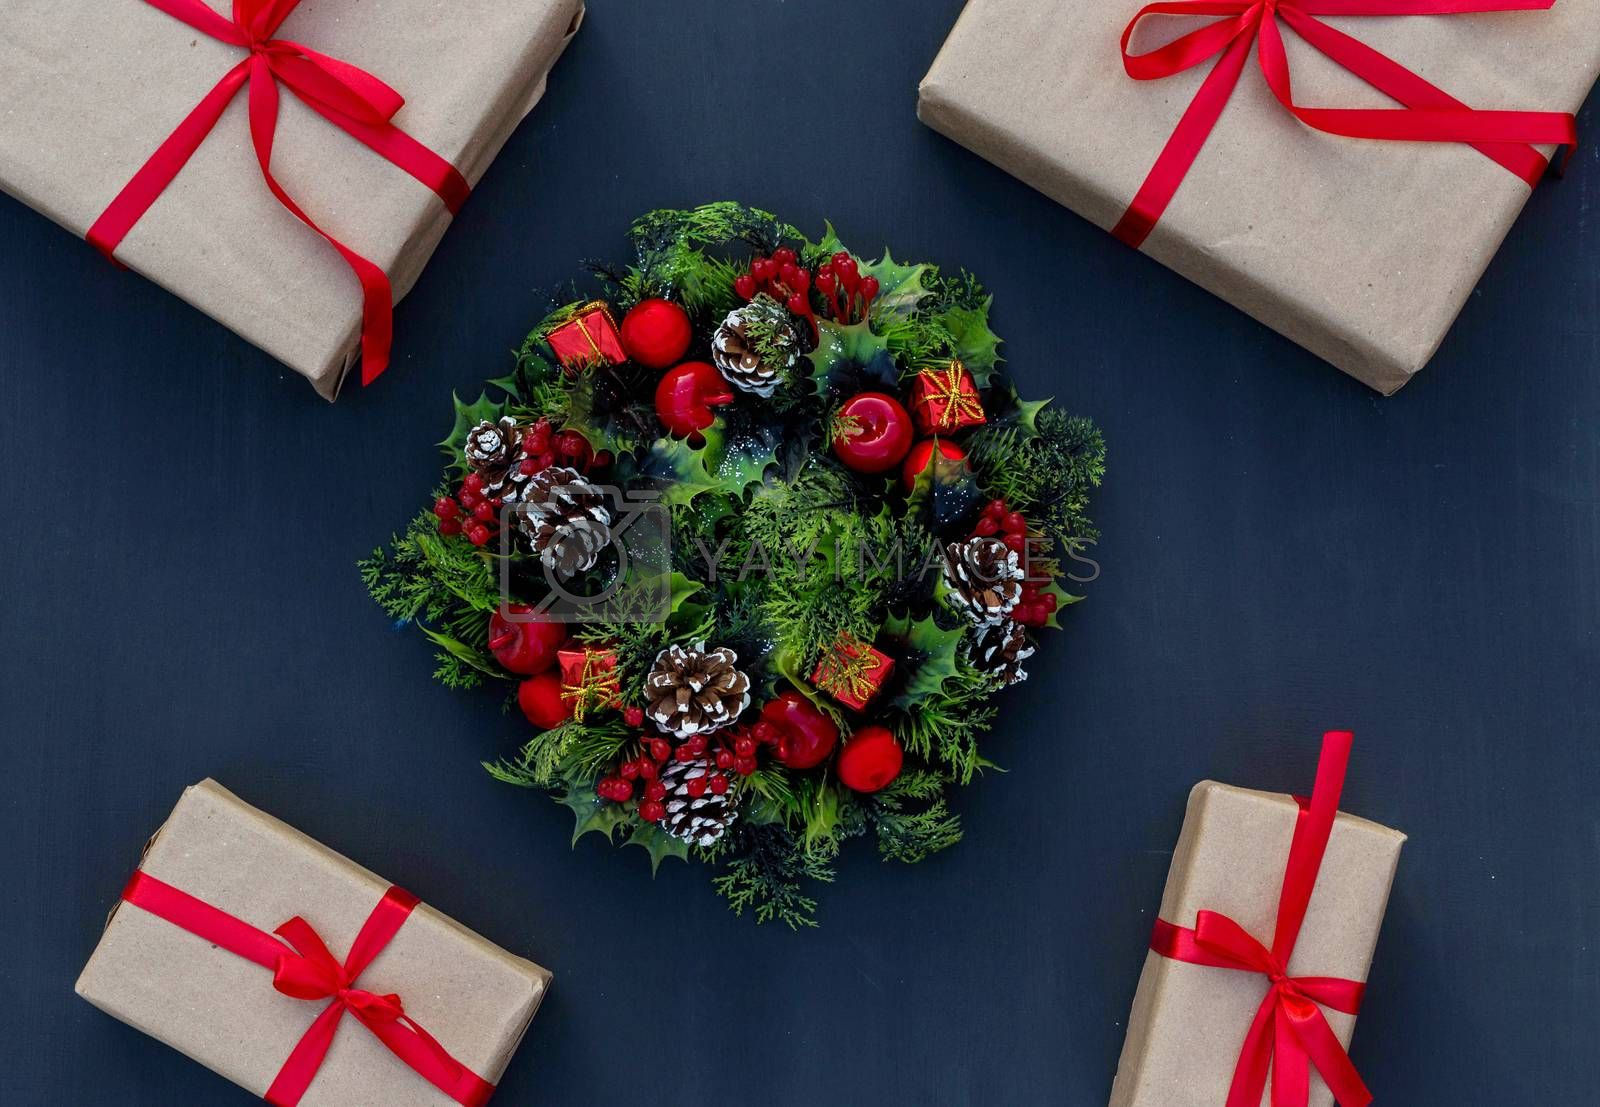 .New year wreath and gifts tied with a red ribbon on a chalk board